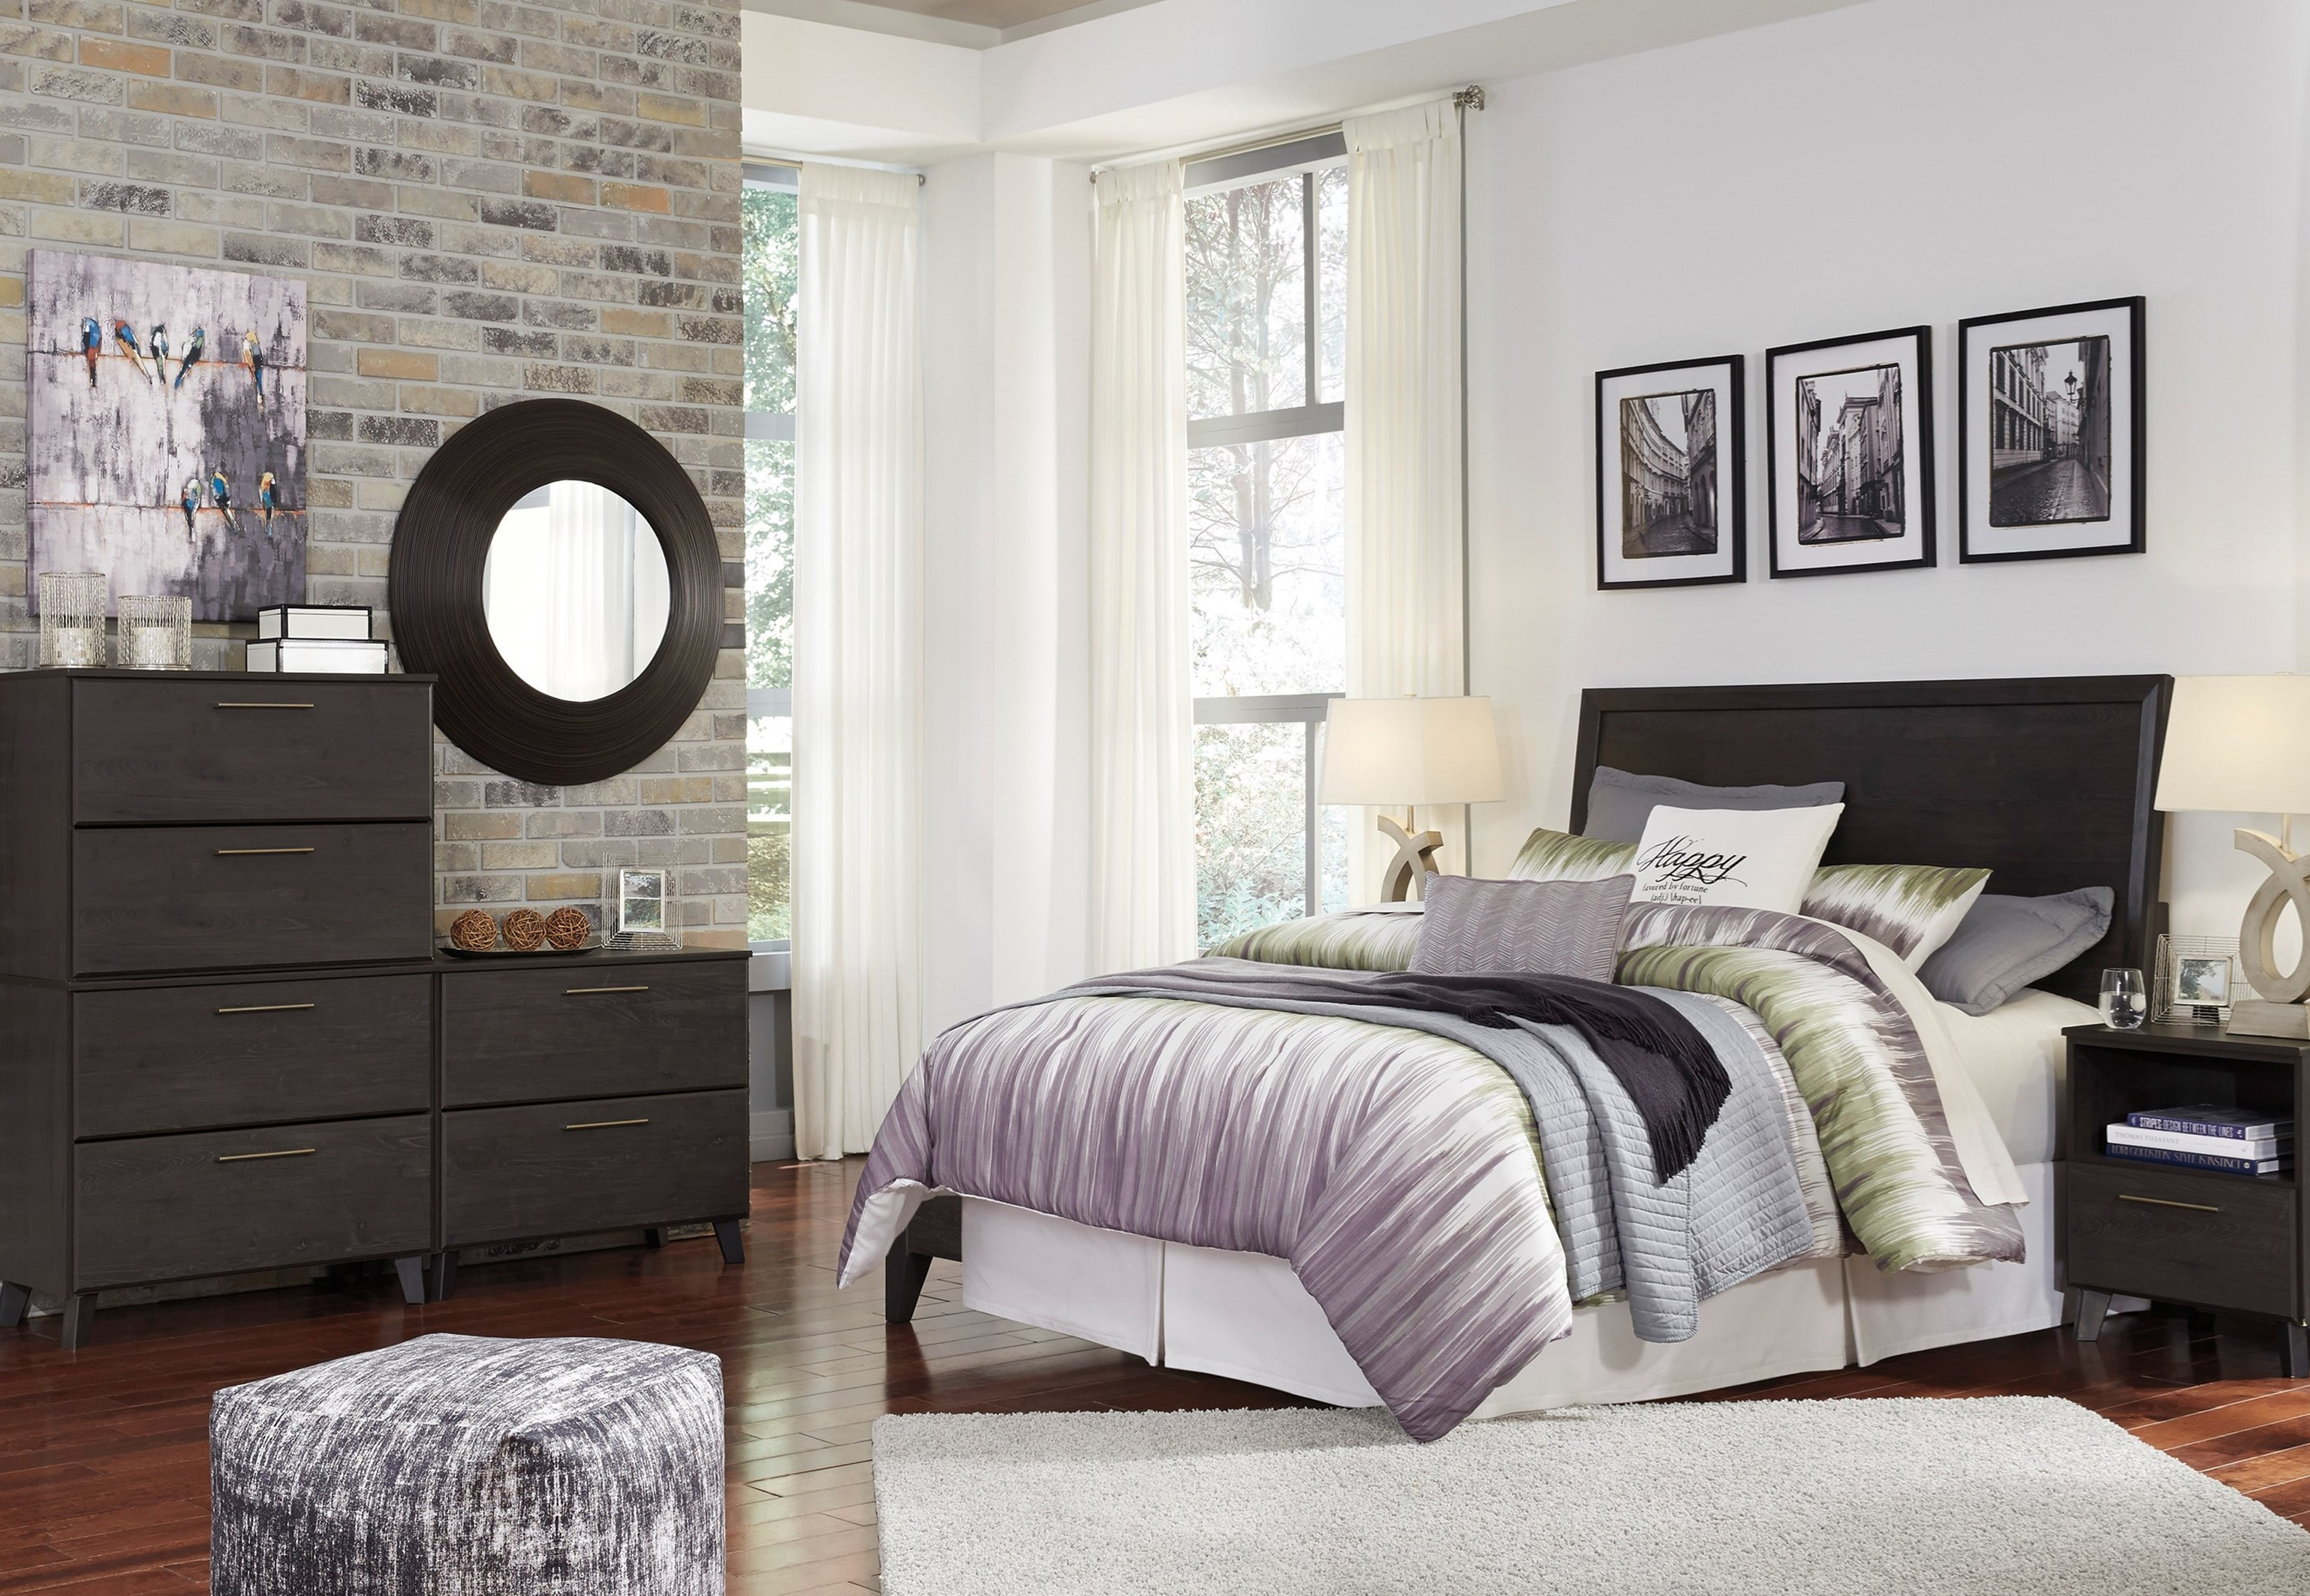 Unique Design Ideas For Styling Your Guest Bedroom - Value ...